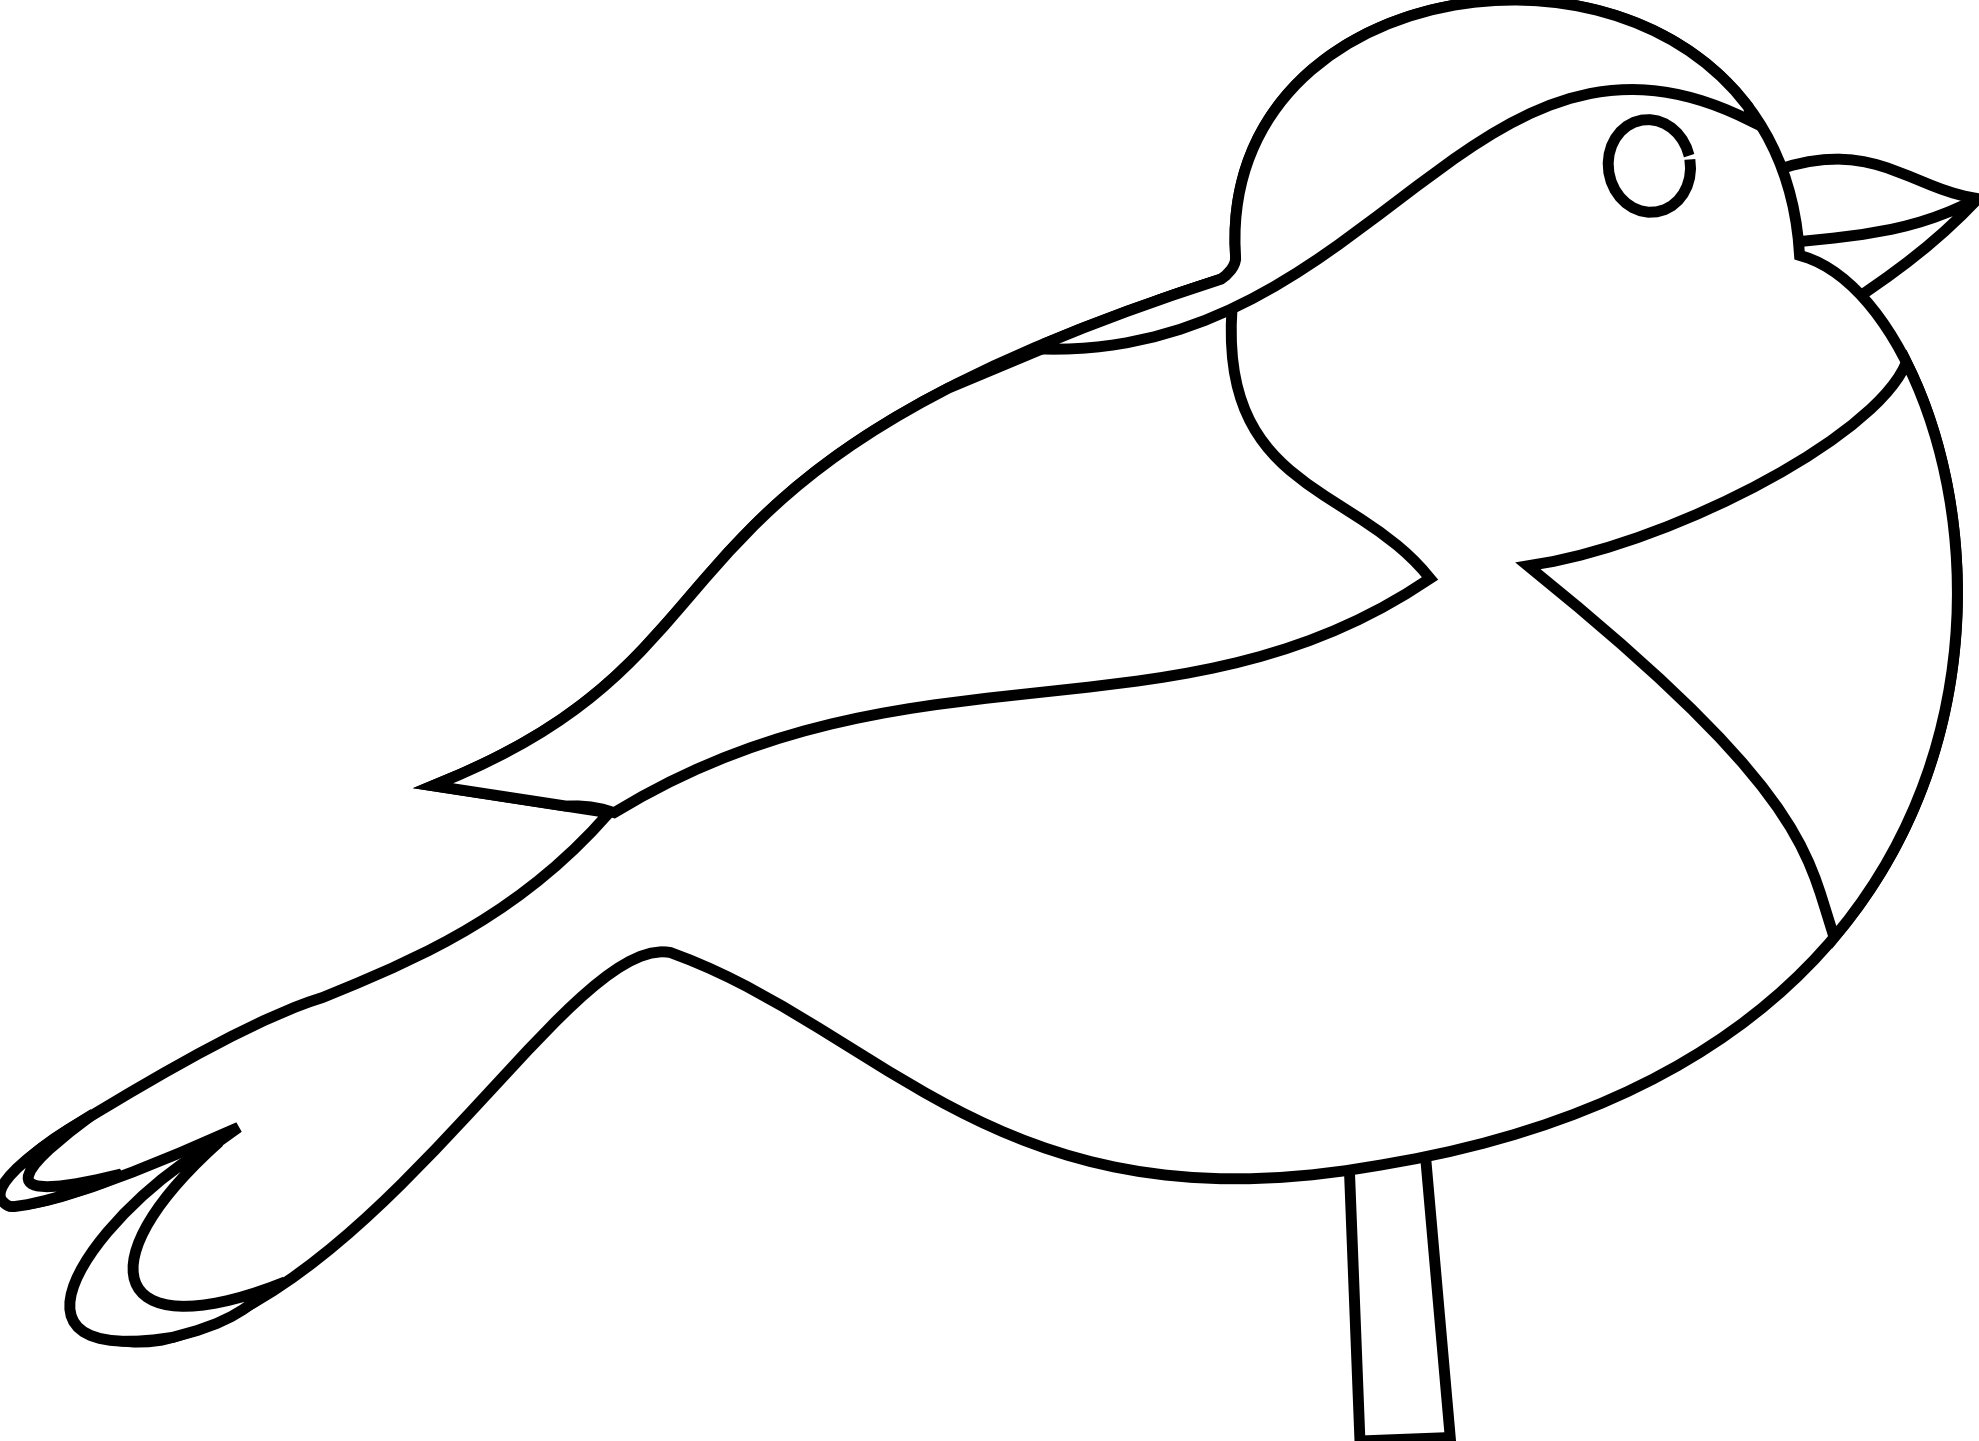 Peace clipart retro. Mourning dove black and